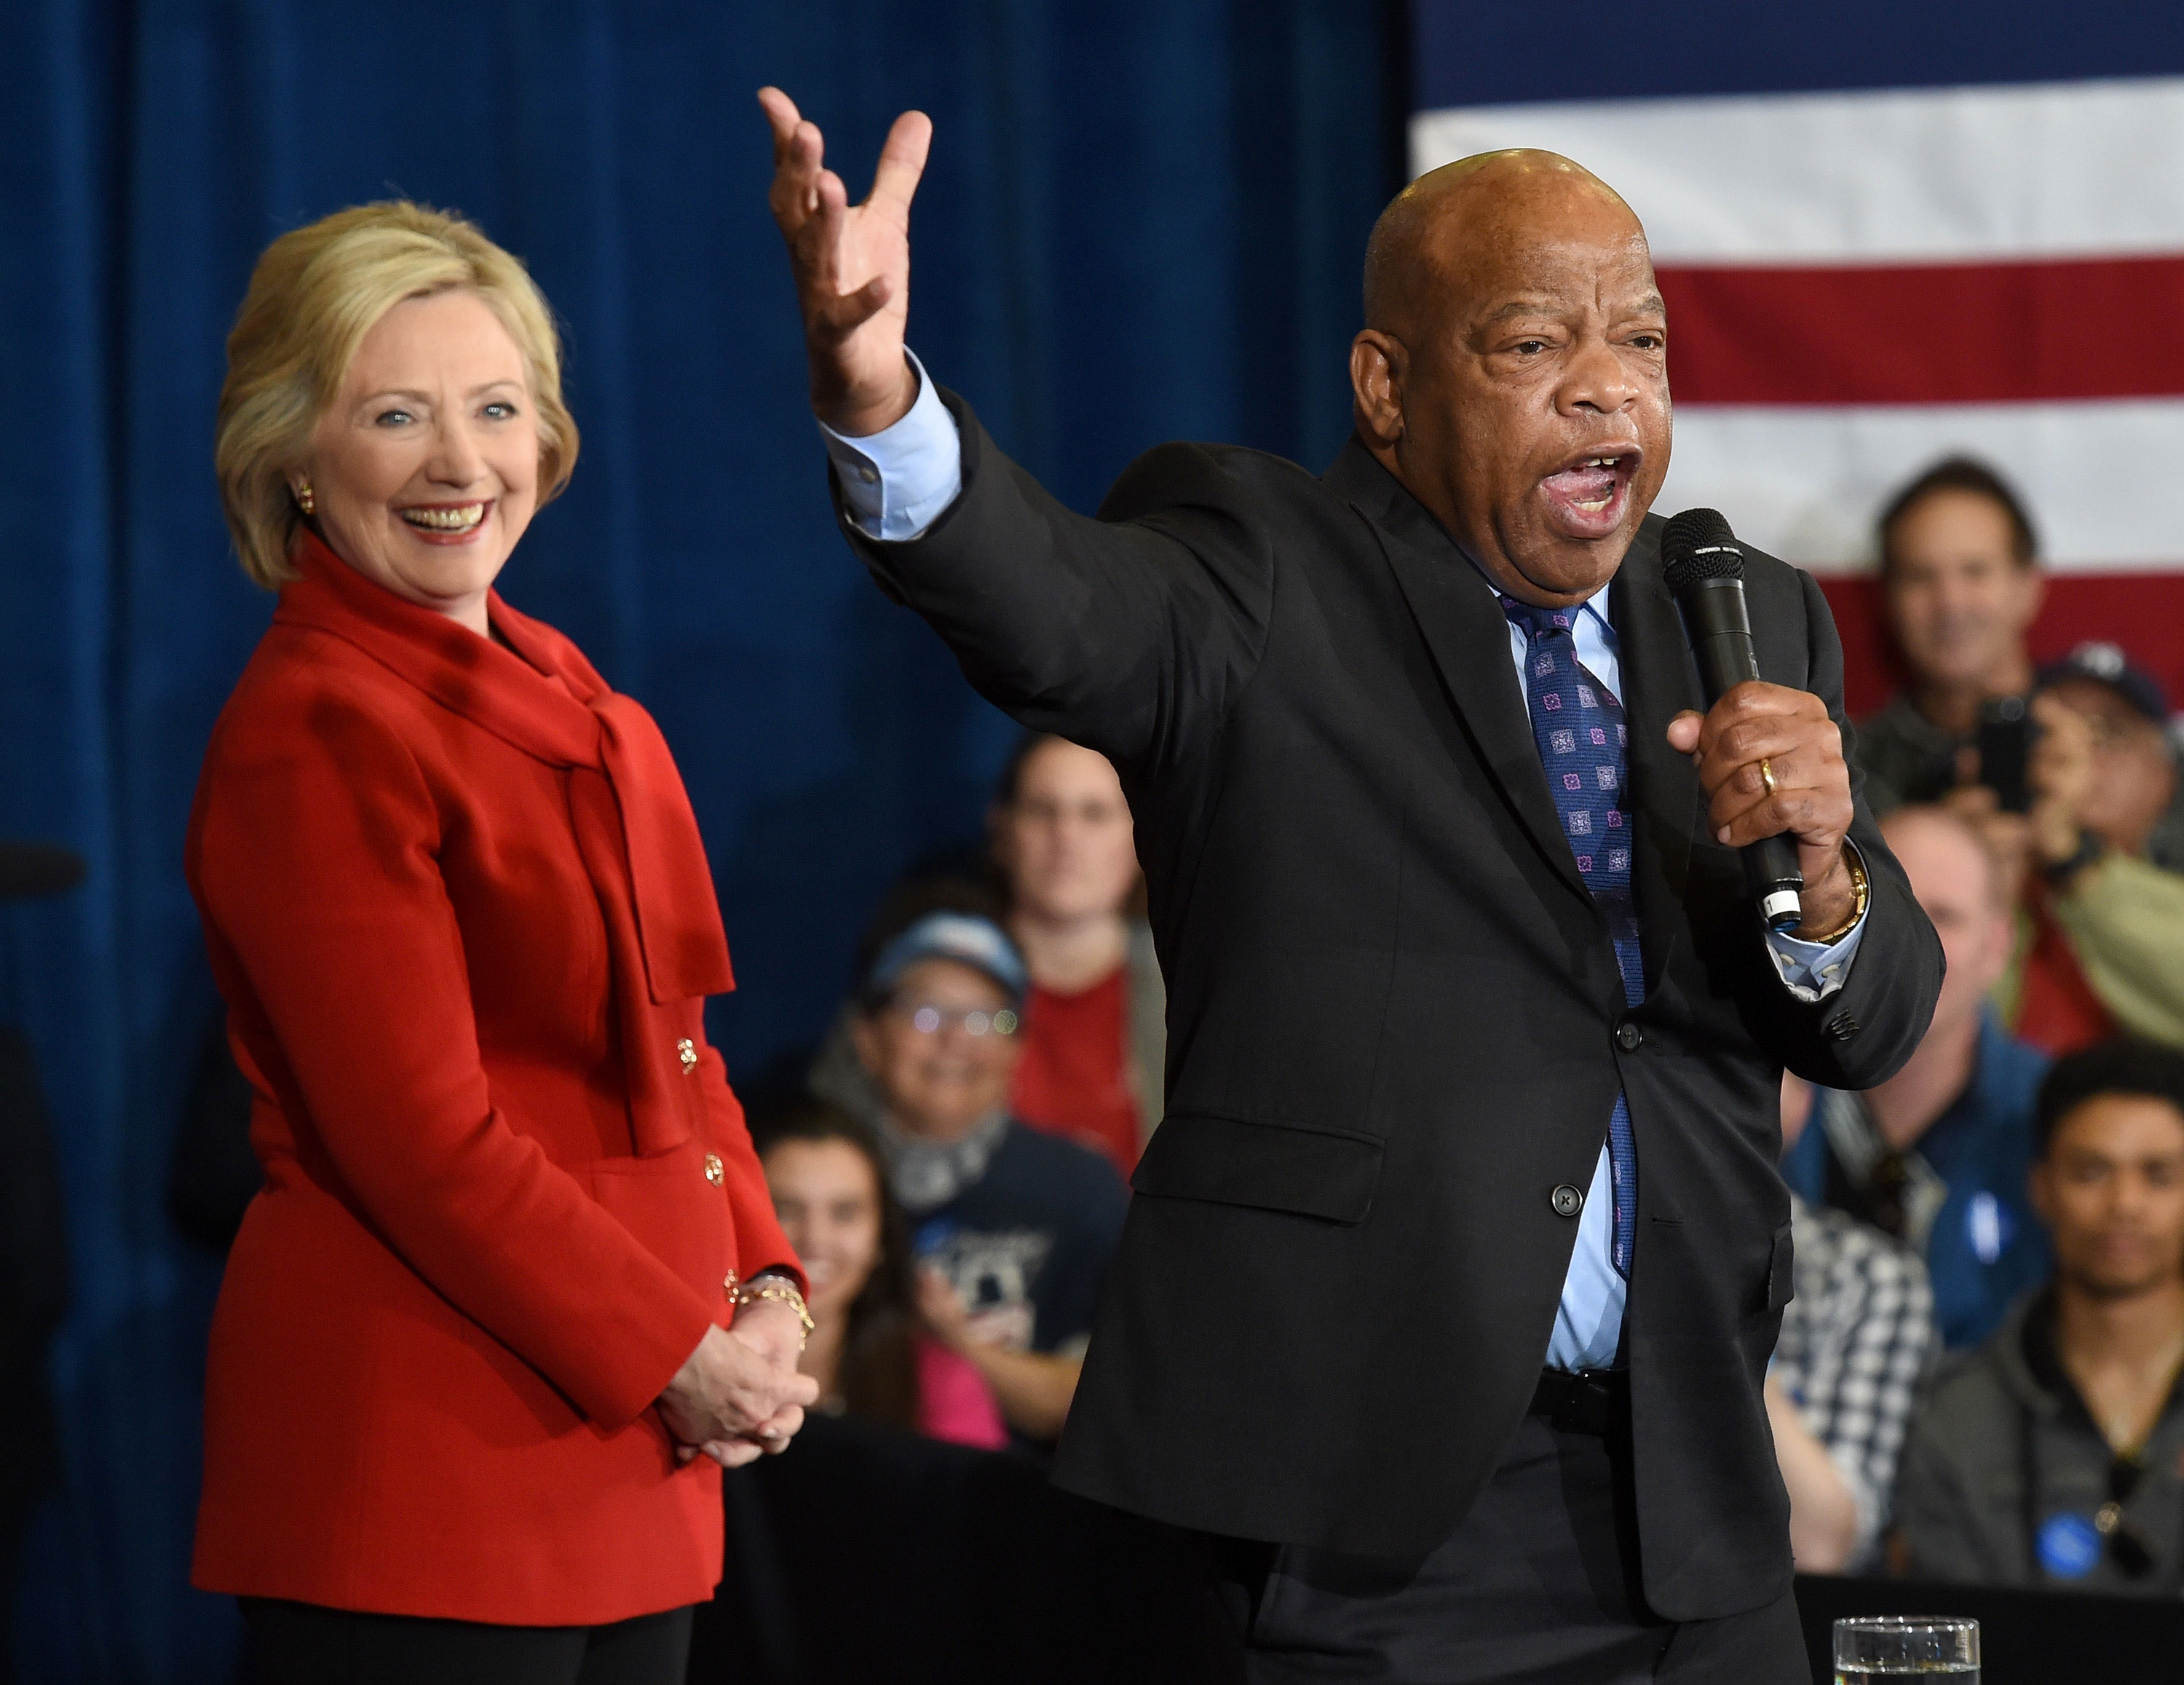 Rep. John Lewis campaigns for Hillary Clinton in Las Vegas in 2016.